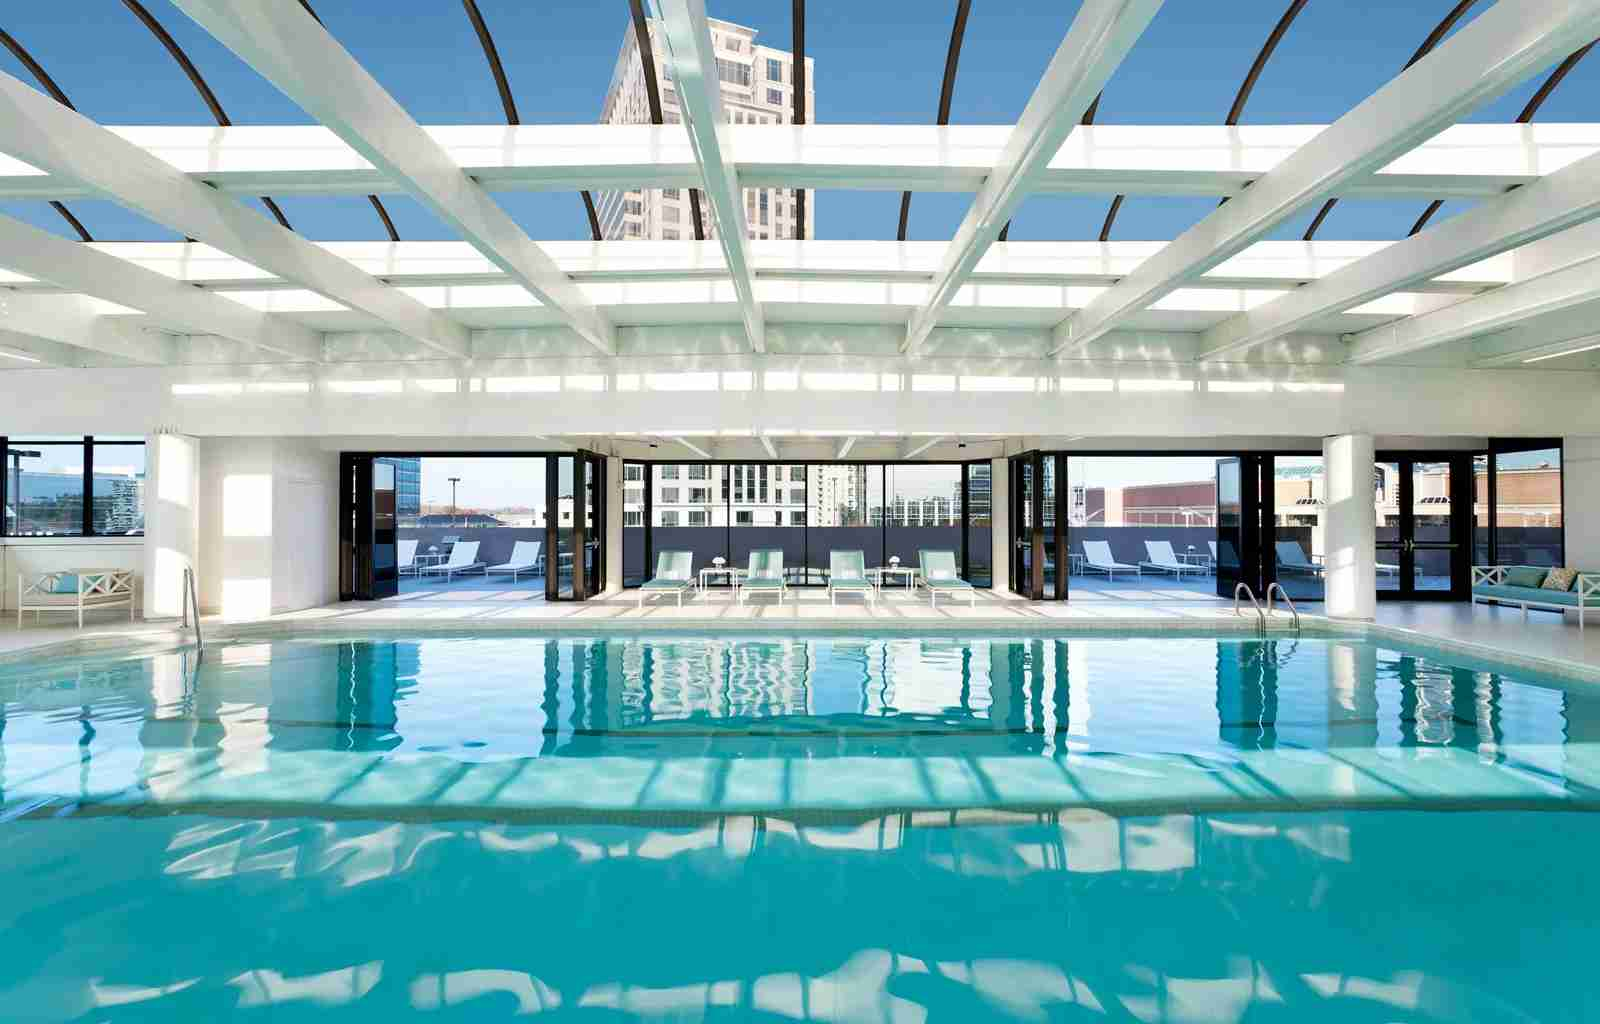 The pool situation at The Whitley, Atlanta. (Photo courtesy of The Whitley)